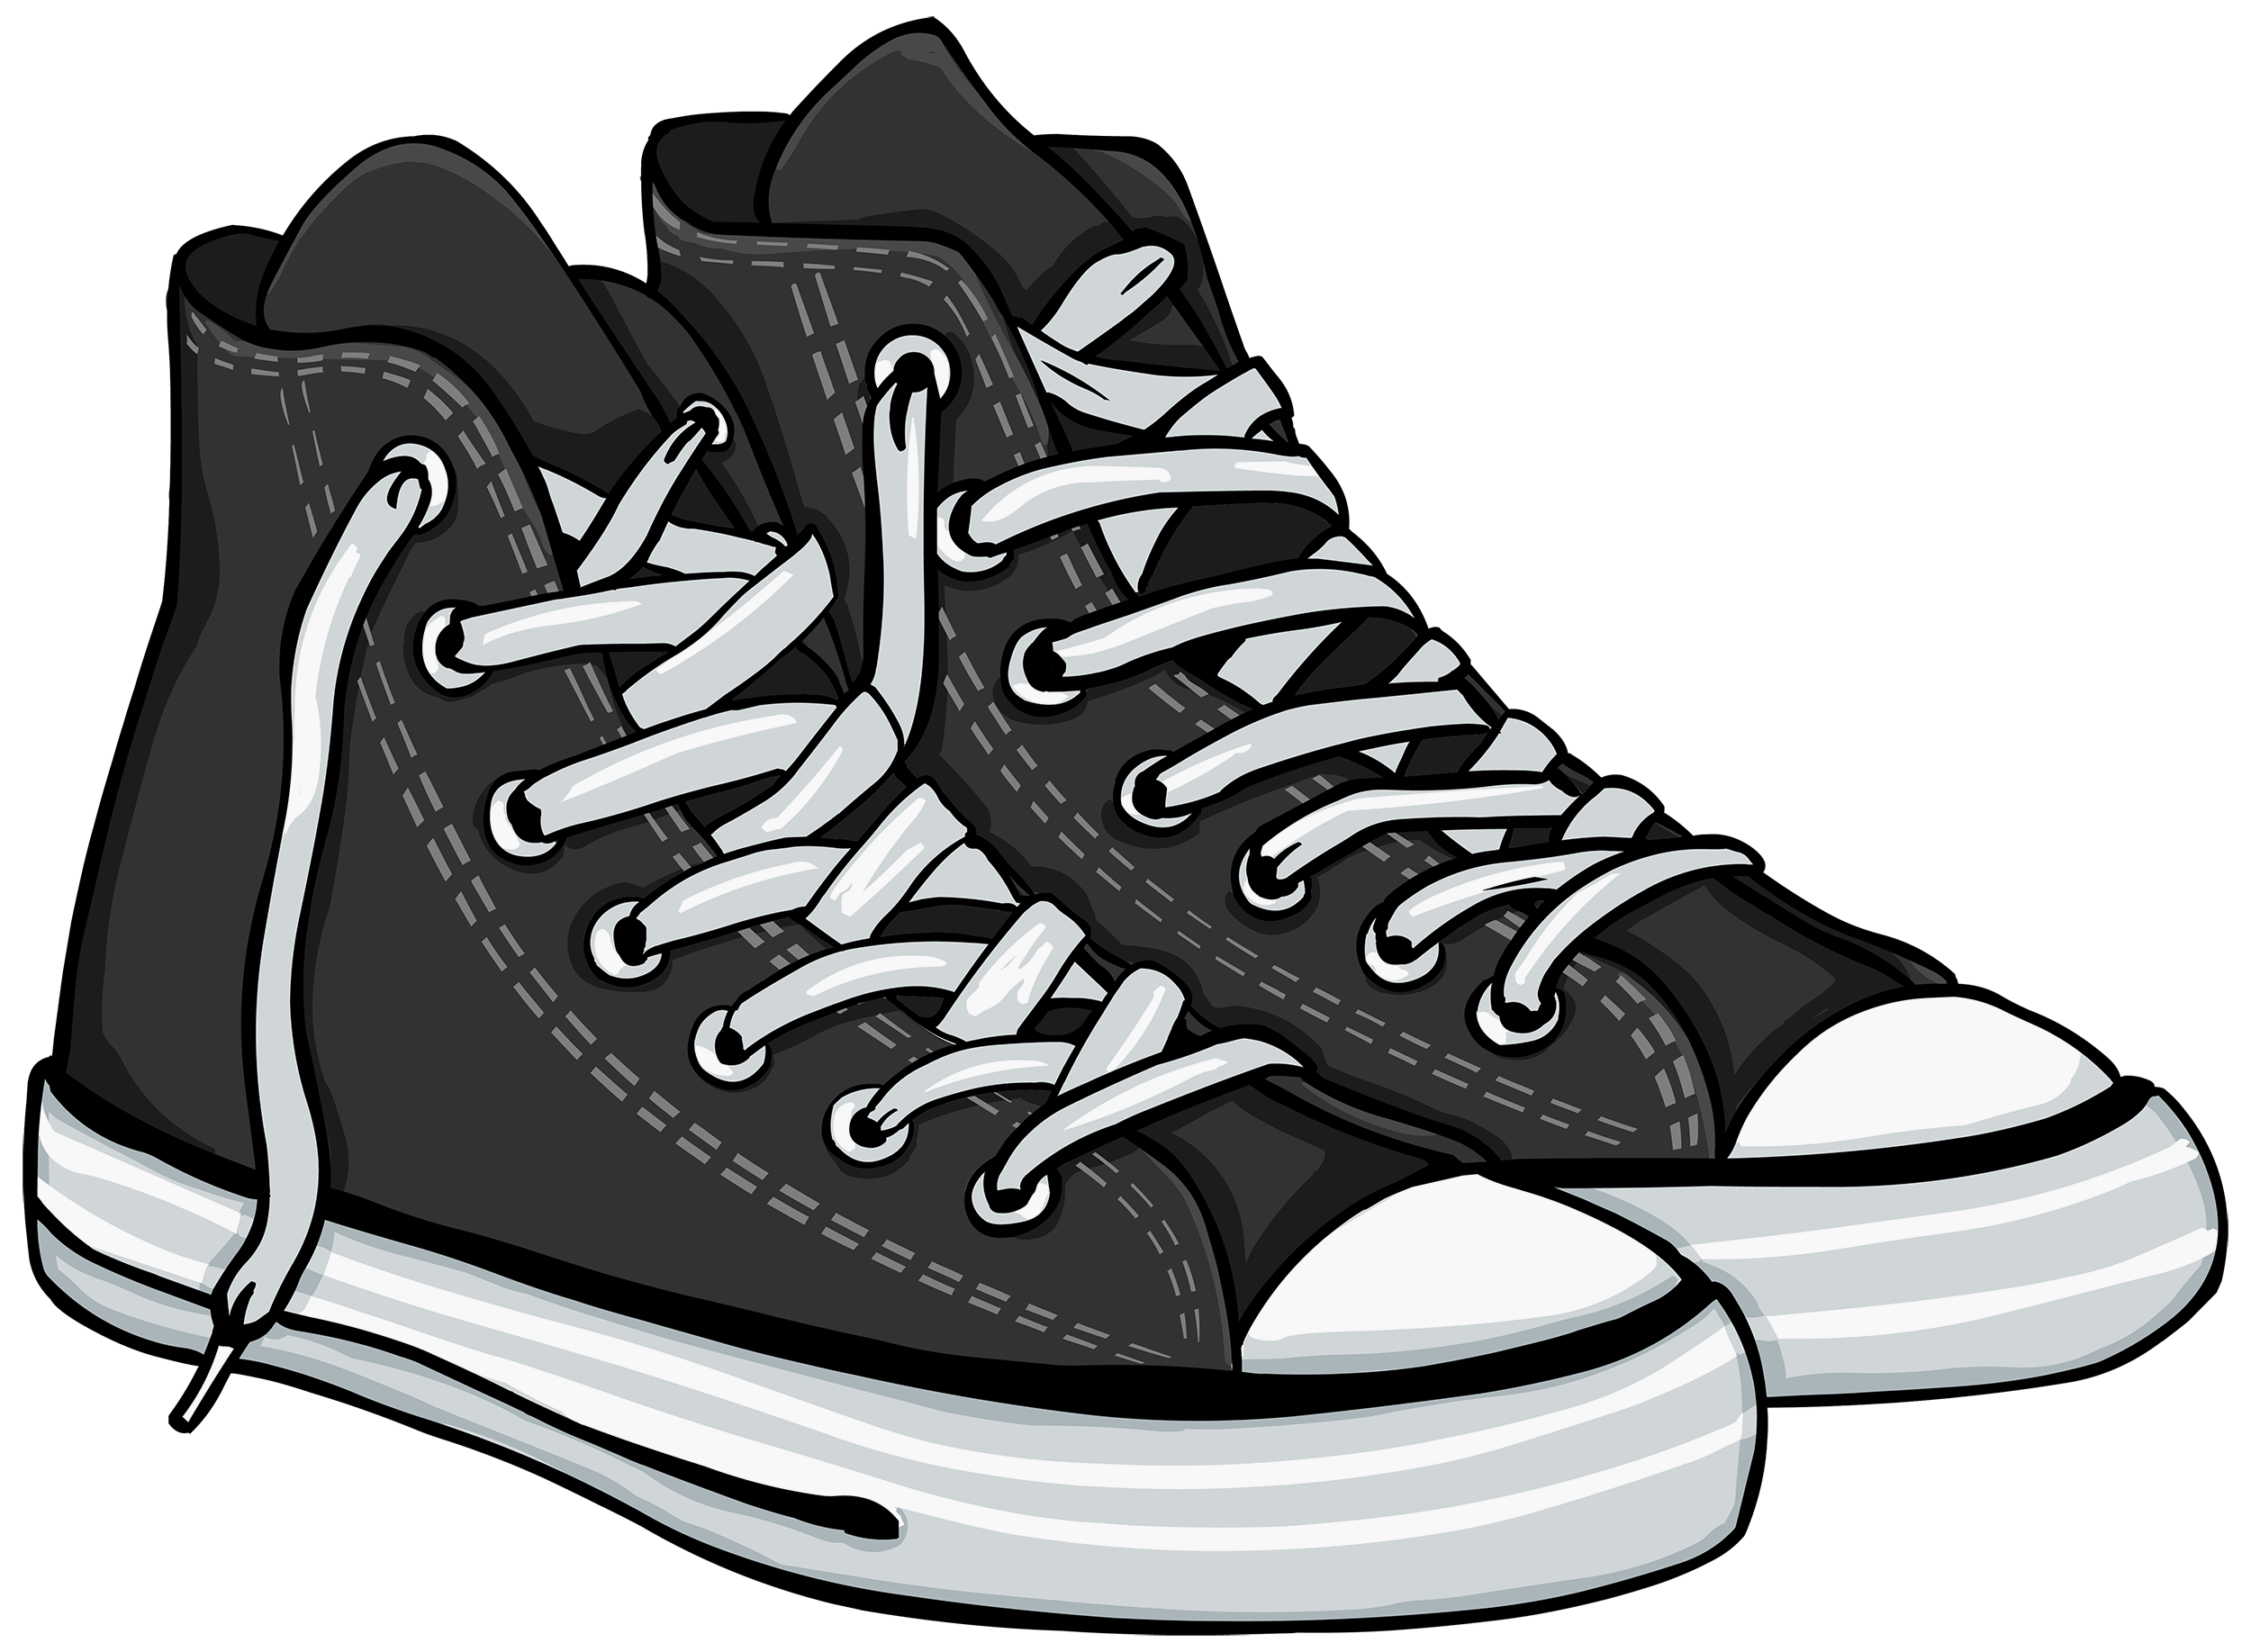 Nba basketball shoes clipart clipart free library Black High Sneakers PNG Clipart - Best WEB Clipart clipart free library